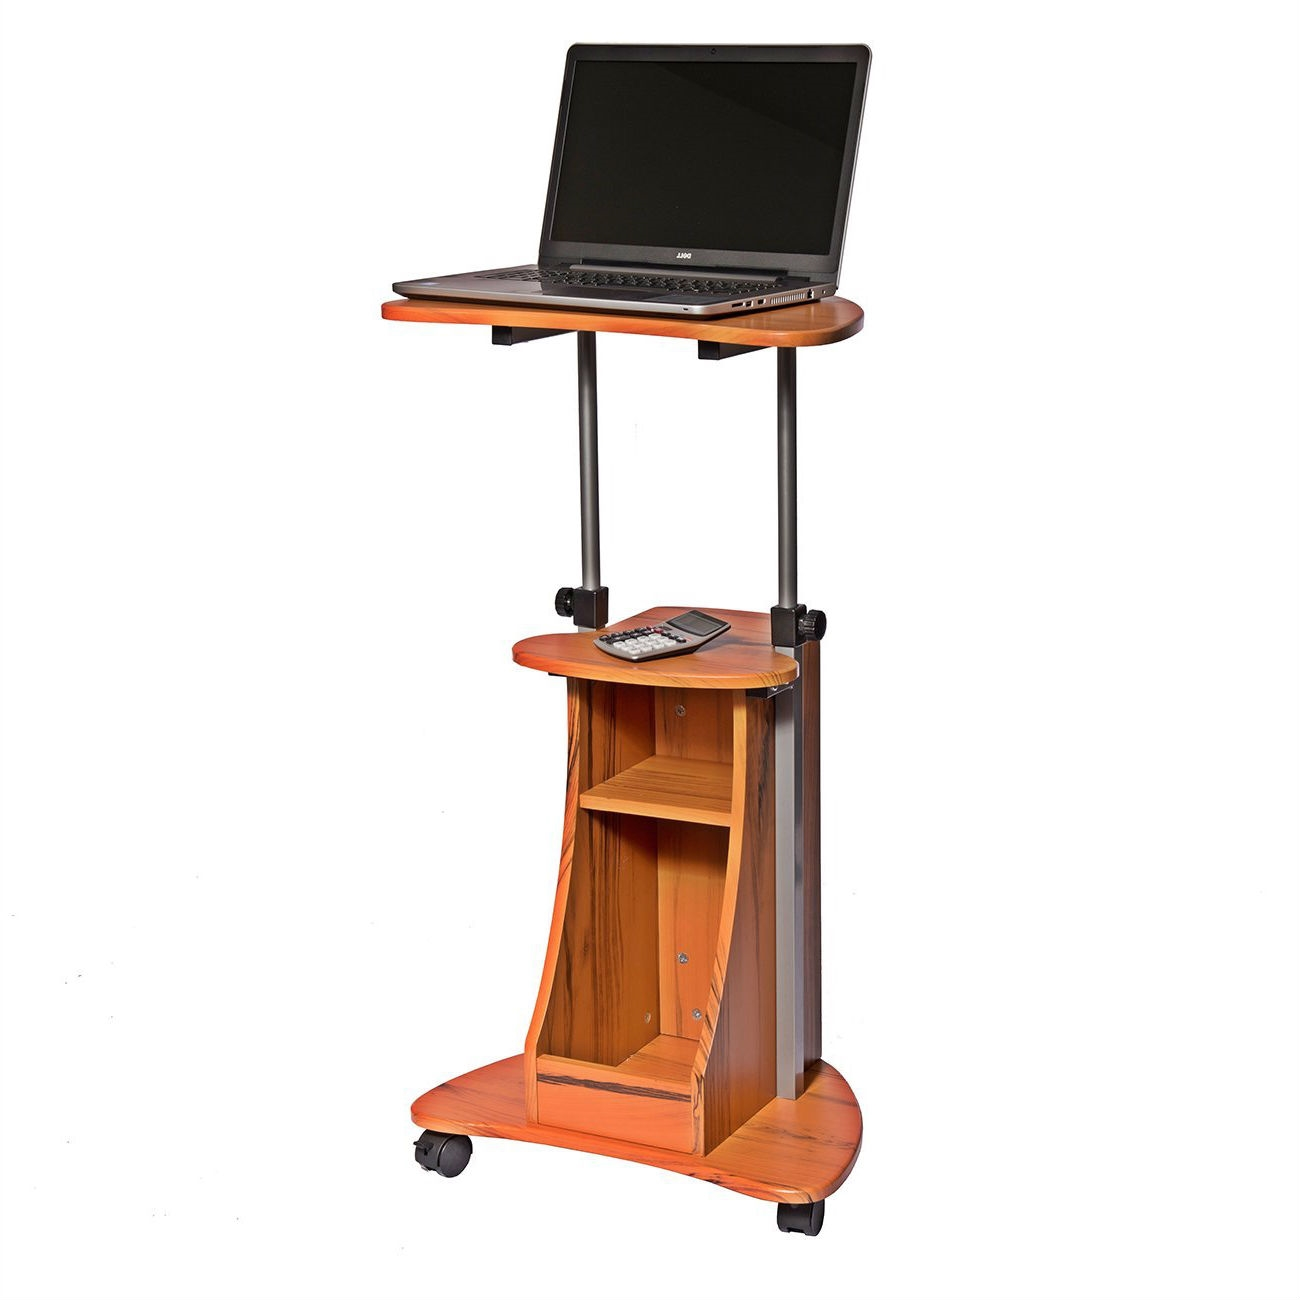 Mobile Sit Down Stand Up Desk Adjustable Height Laptop Cart in